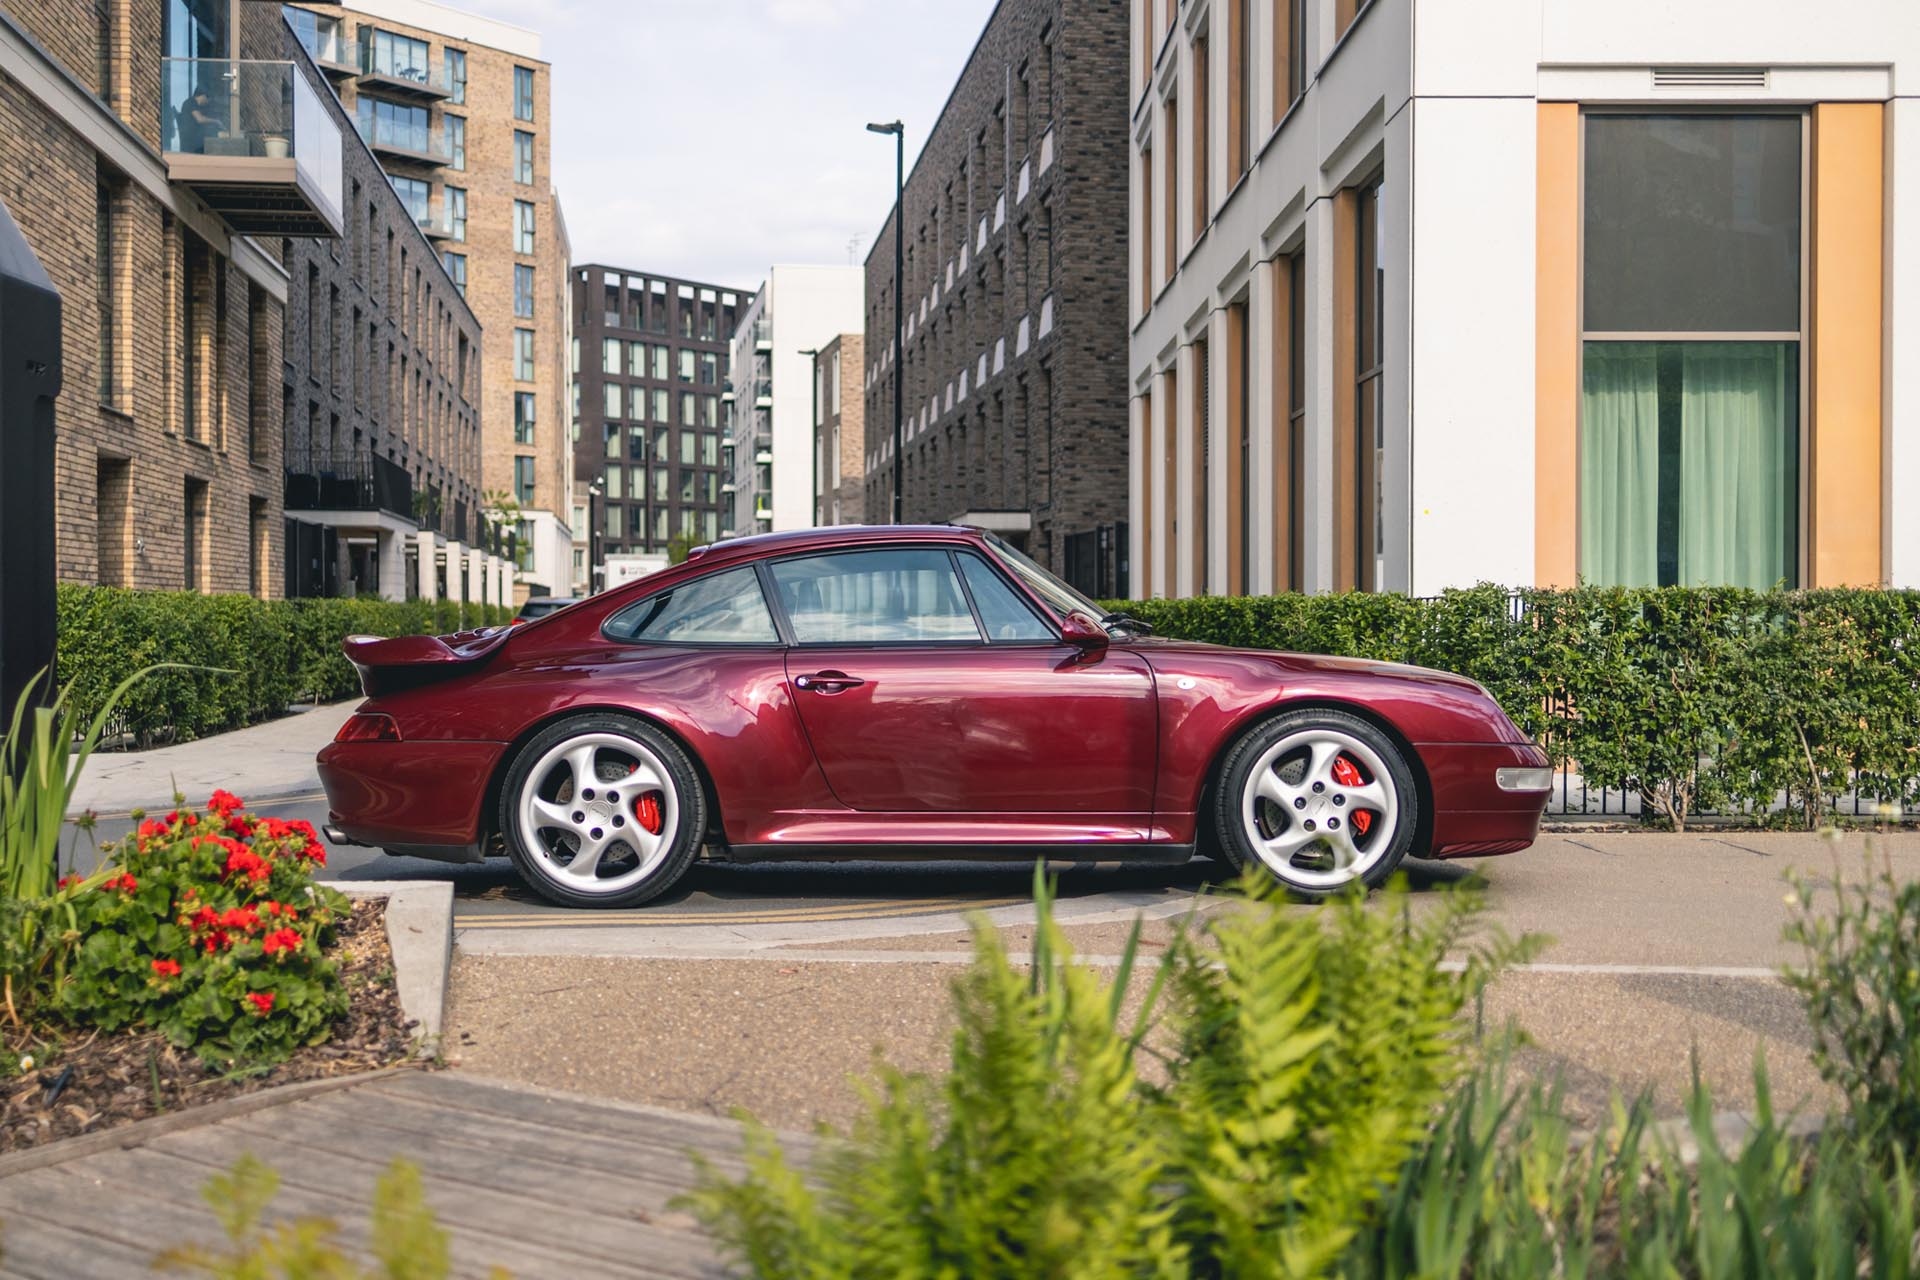 993-turbo-in-town